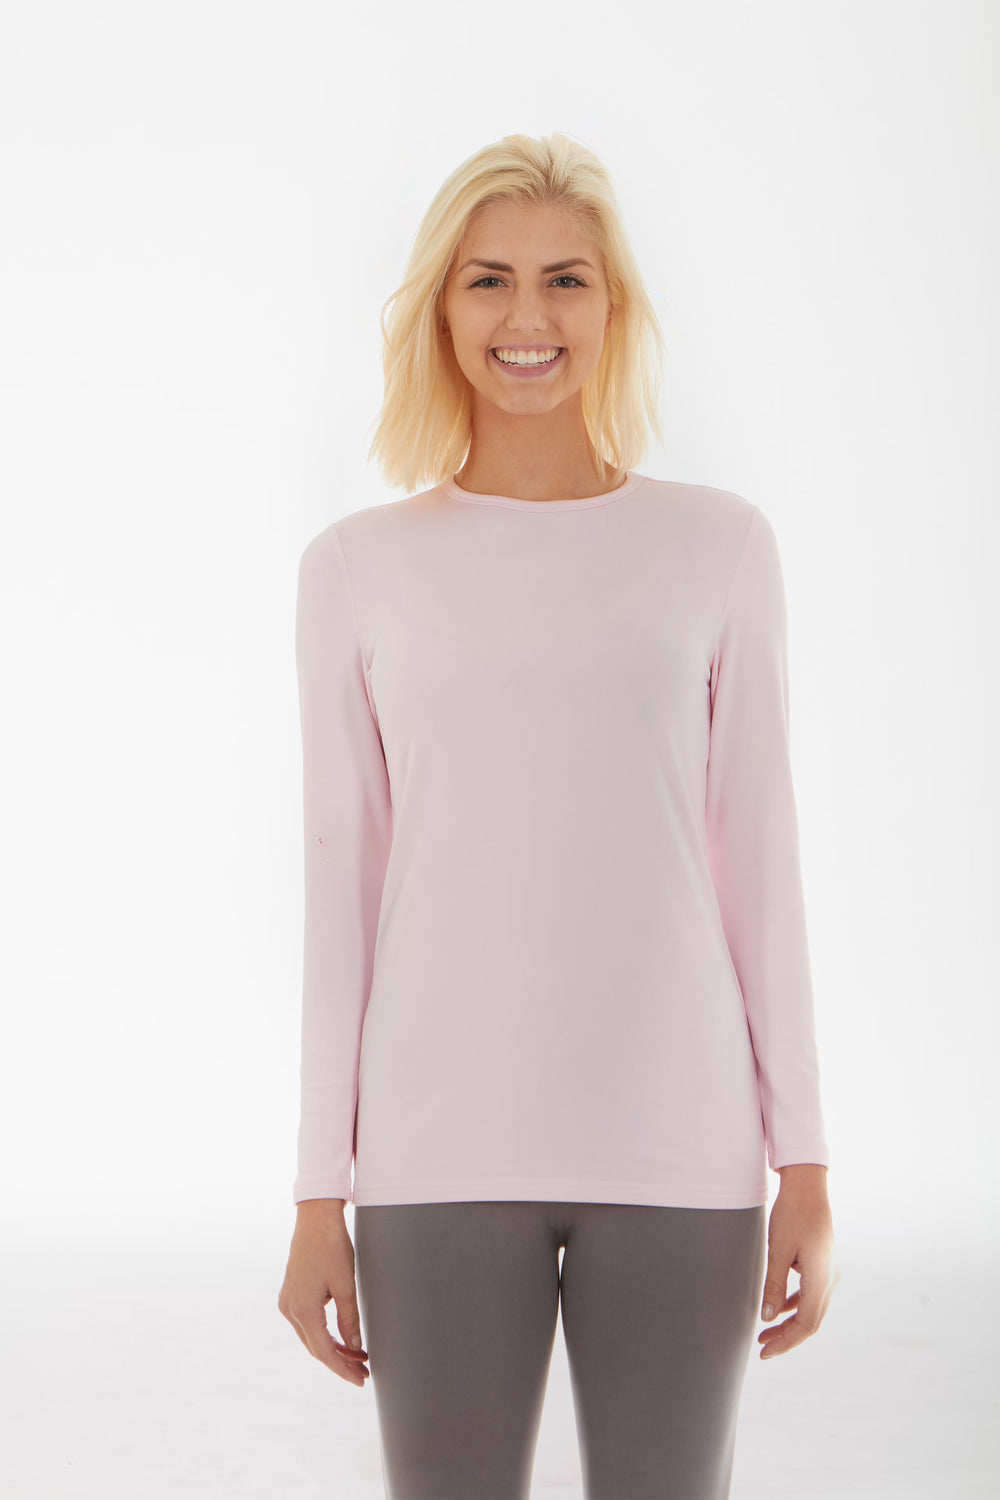 Baby Pink Women's Crew Neck Shirt